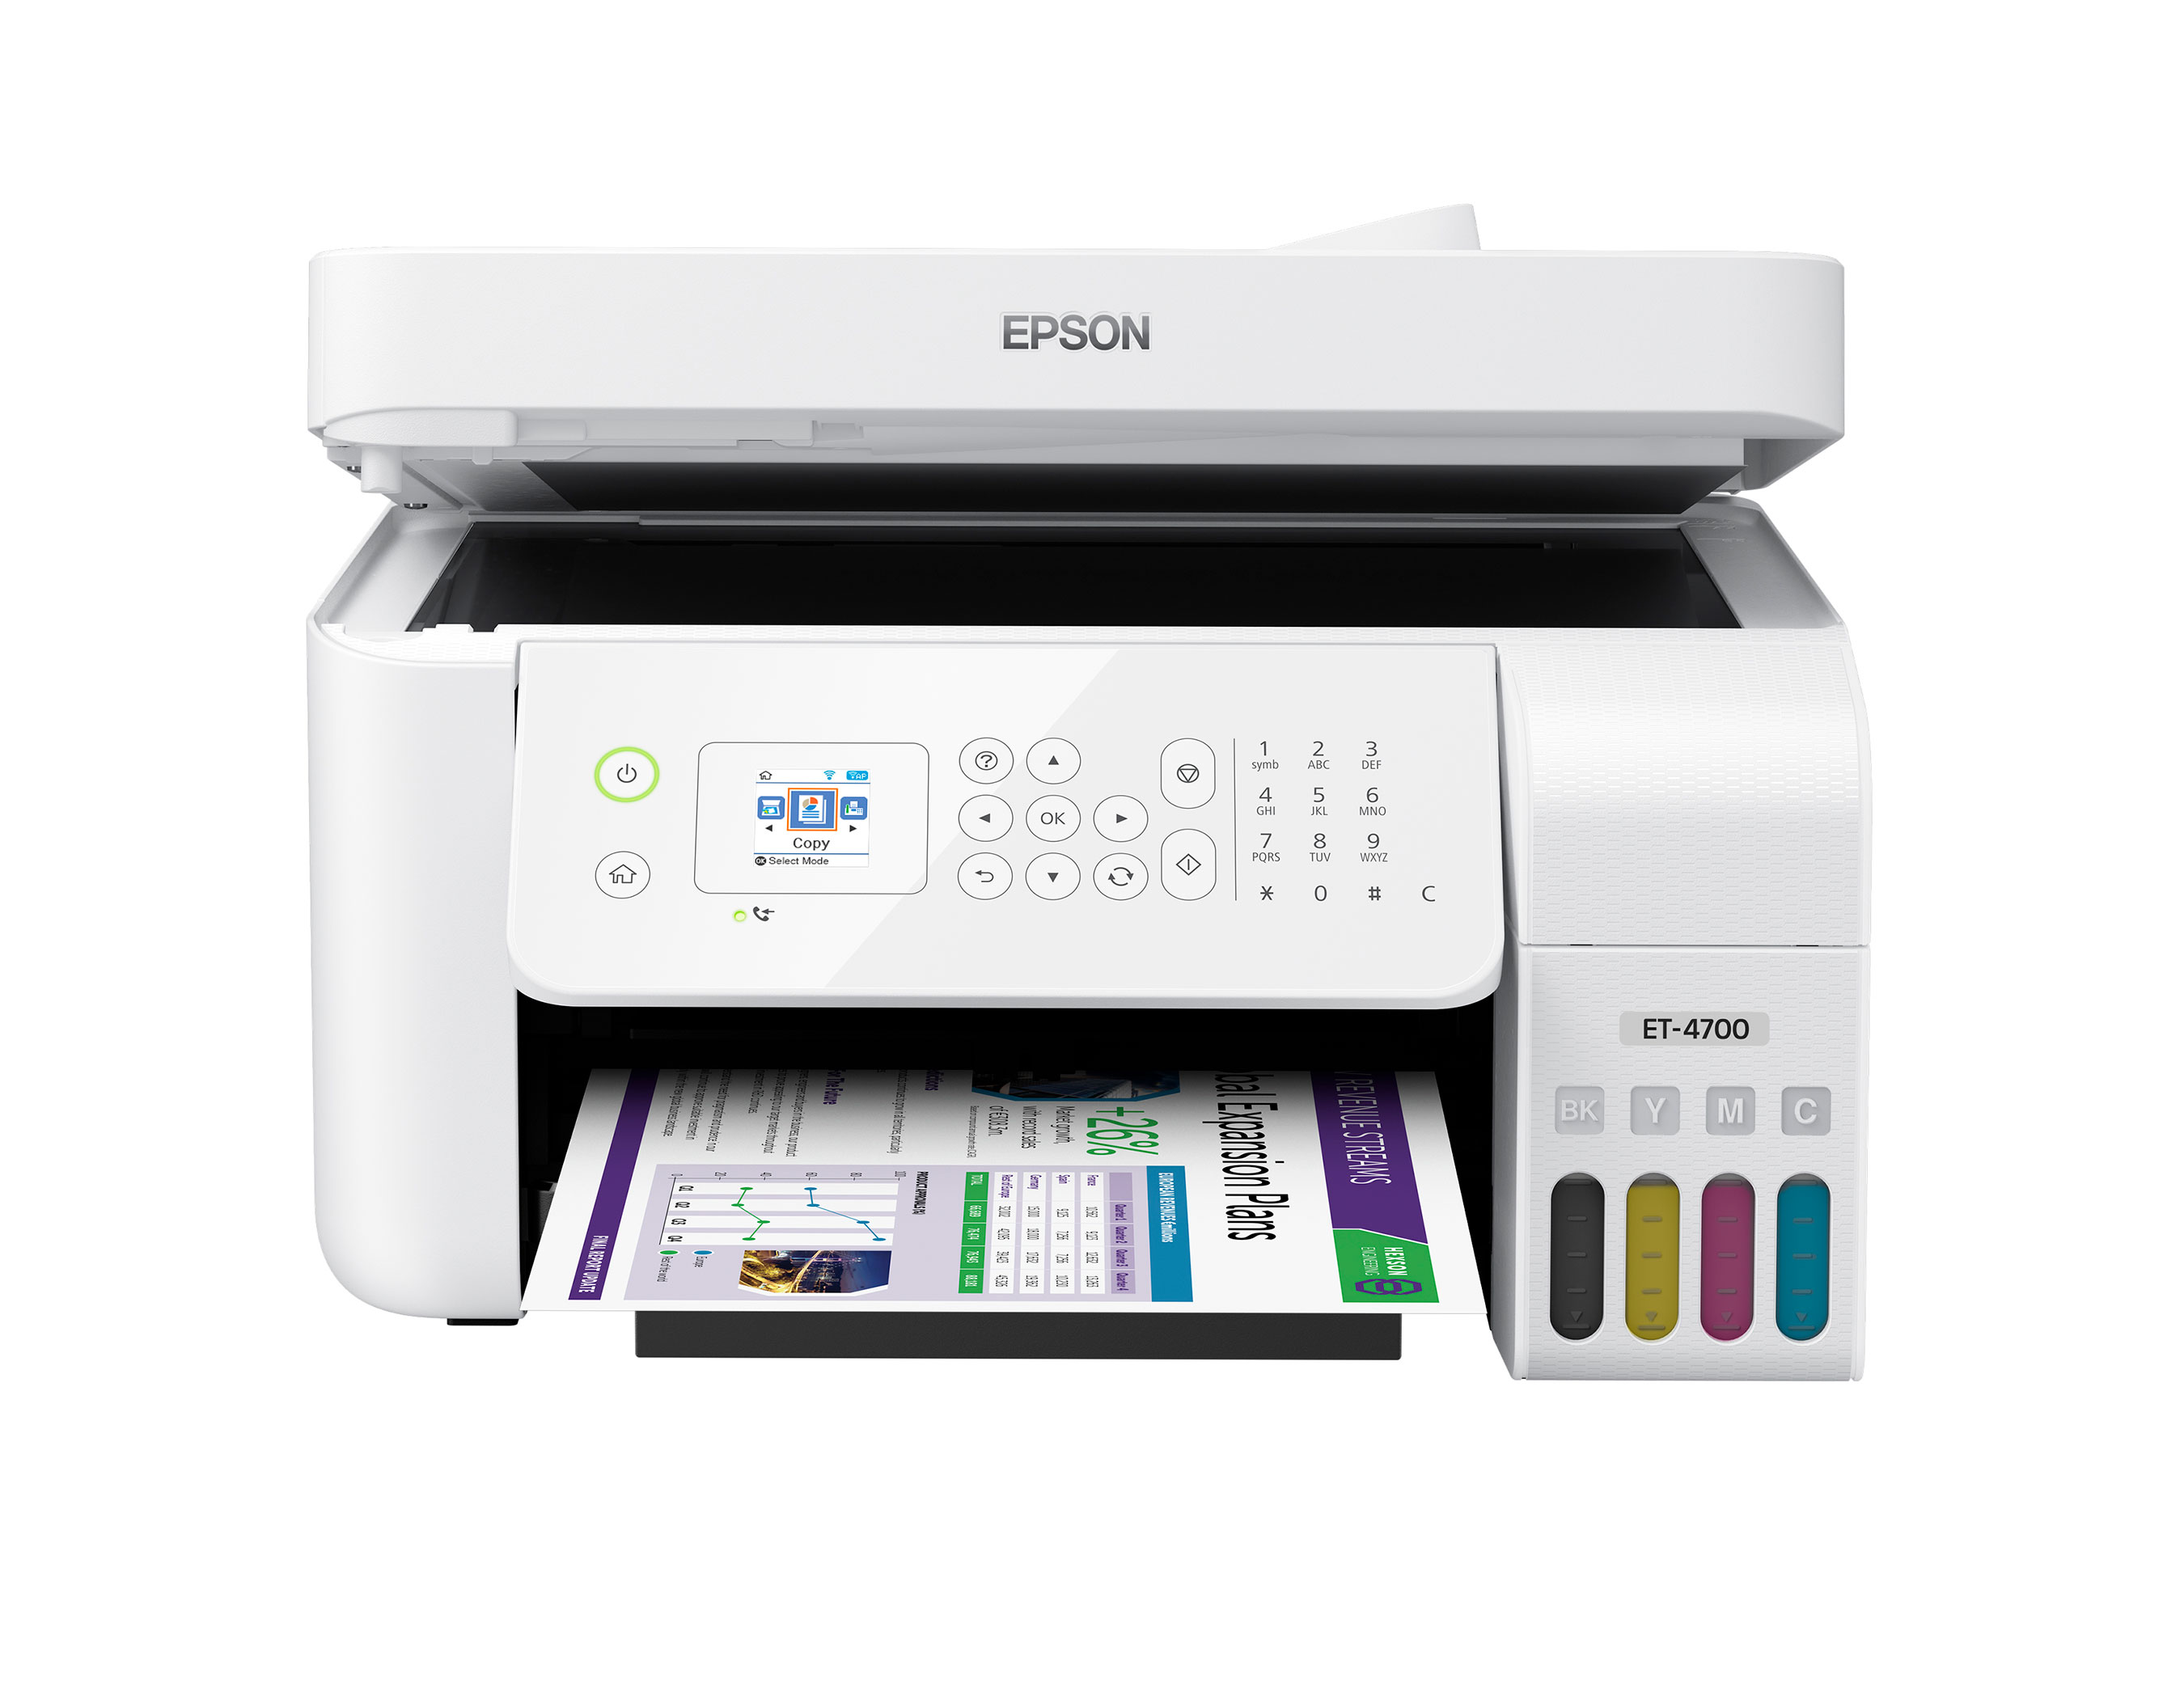 The Epson EcoTank ET-4700 All-in-One Supertank Printer offers wireless, cartridge-free printing, ADF and fax for the office.